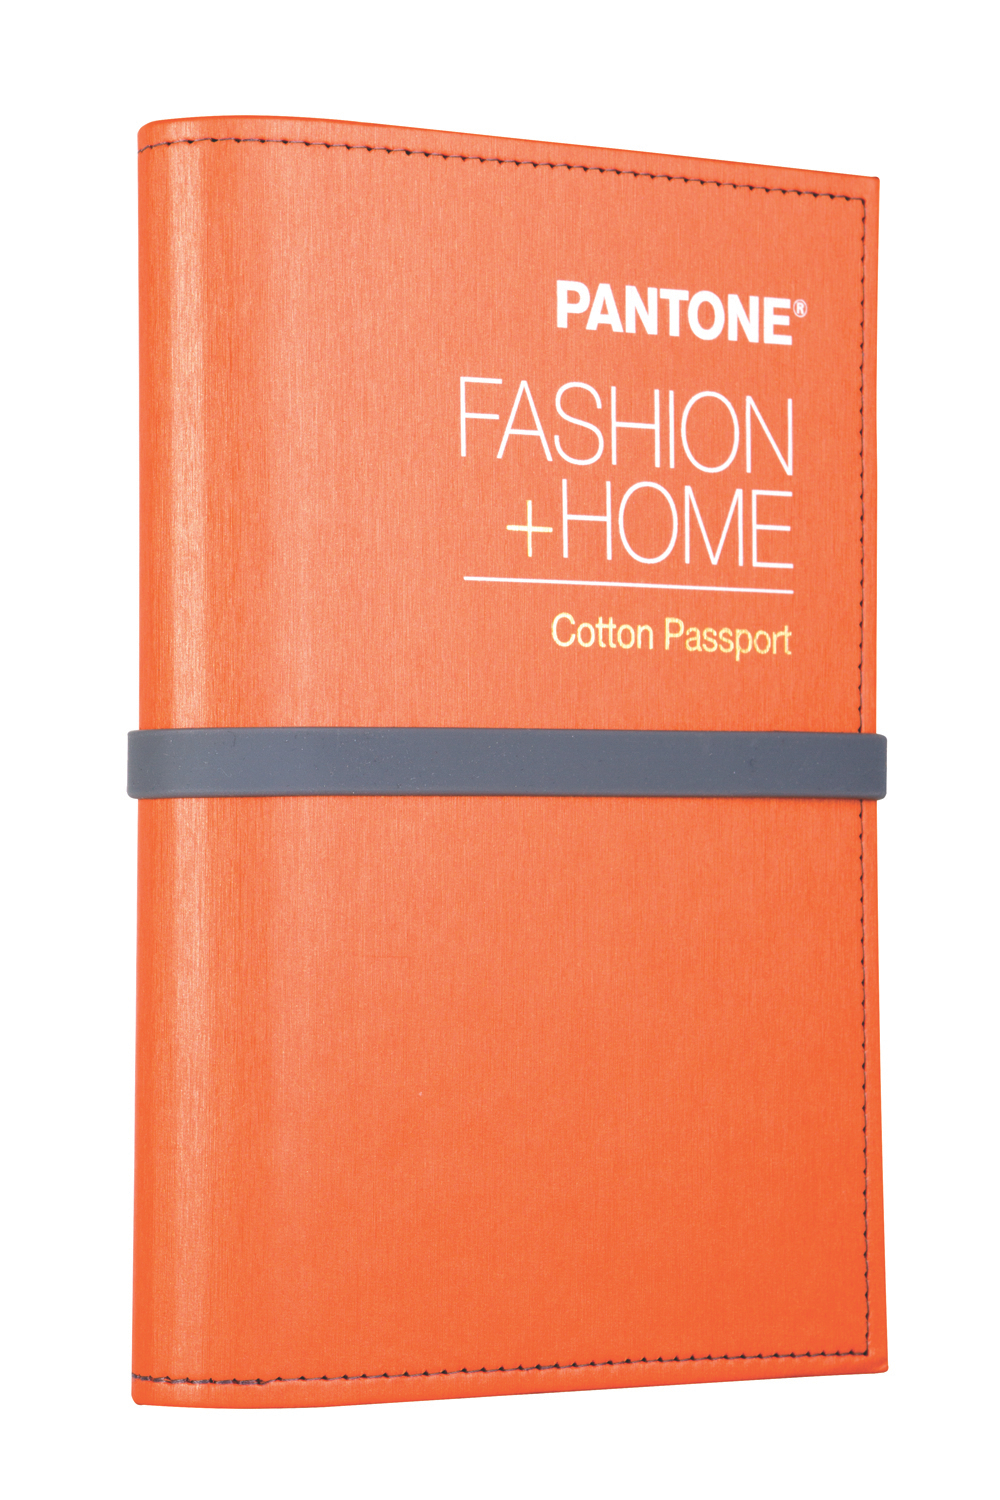 Pantone Fhi Ffc204 Passport-Cotton